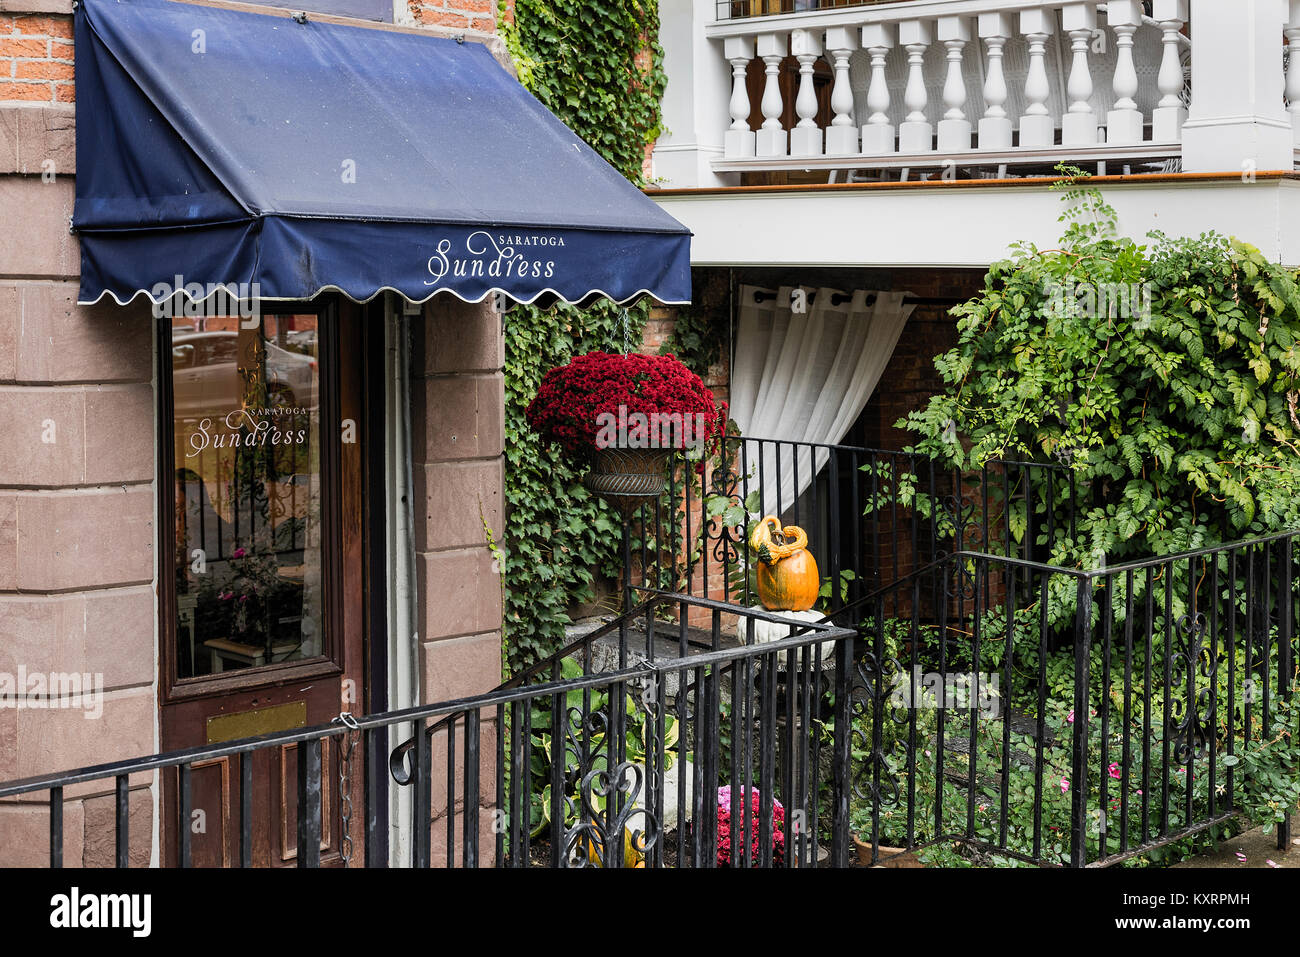 Charming dress shop in Saratoga Springs, New York, USA. - Stock Image